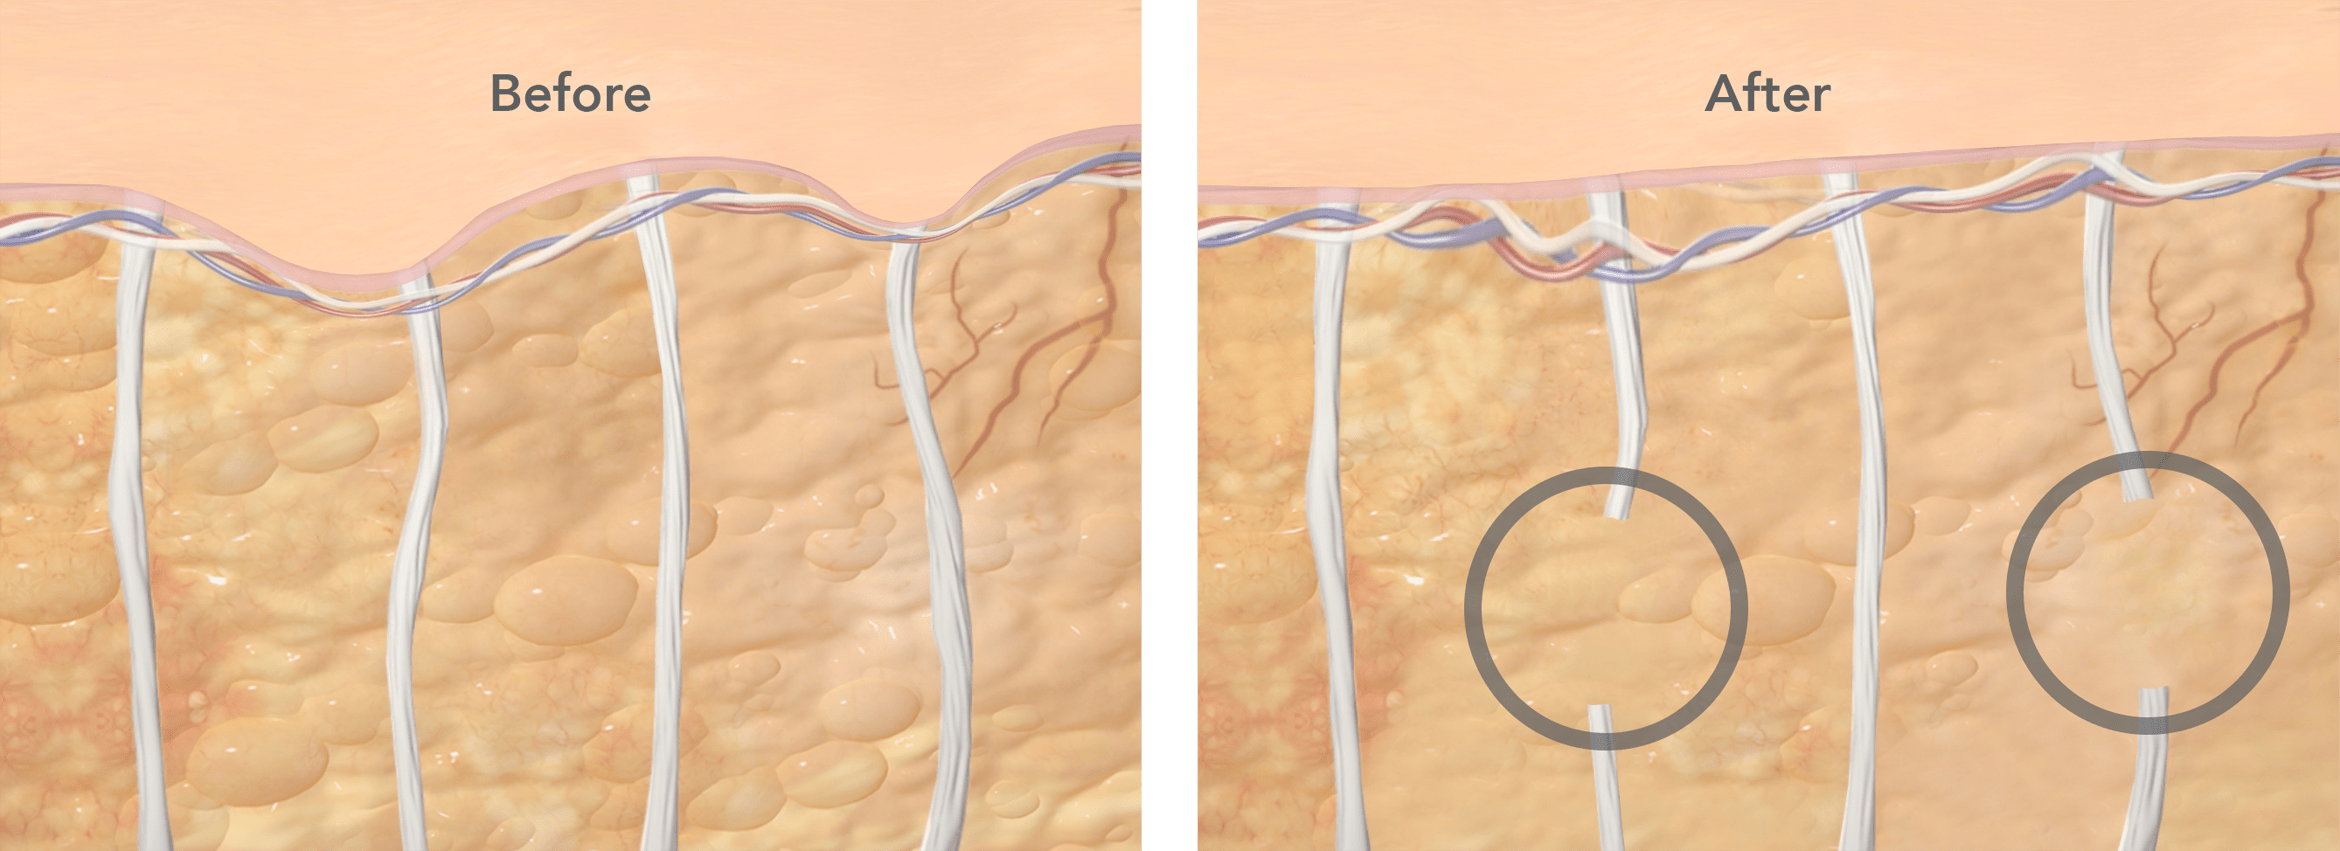 Before and After cross-section